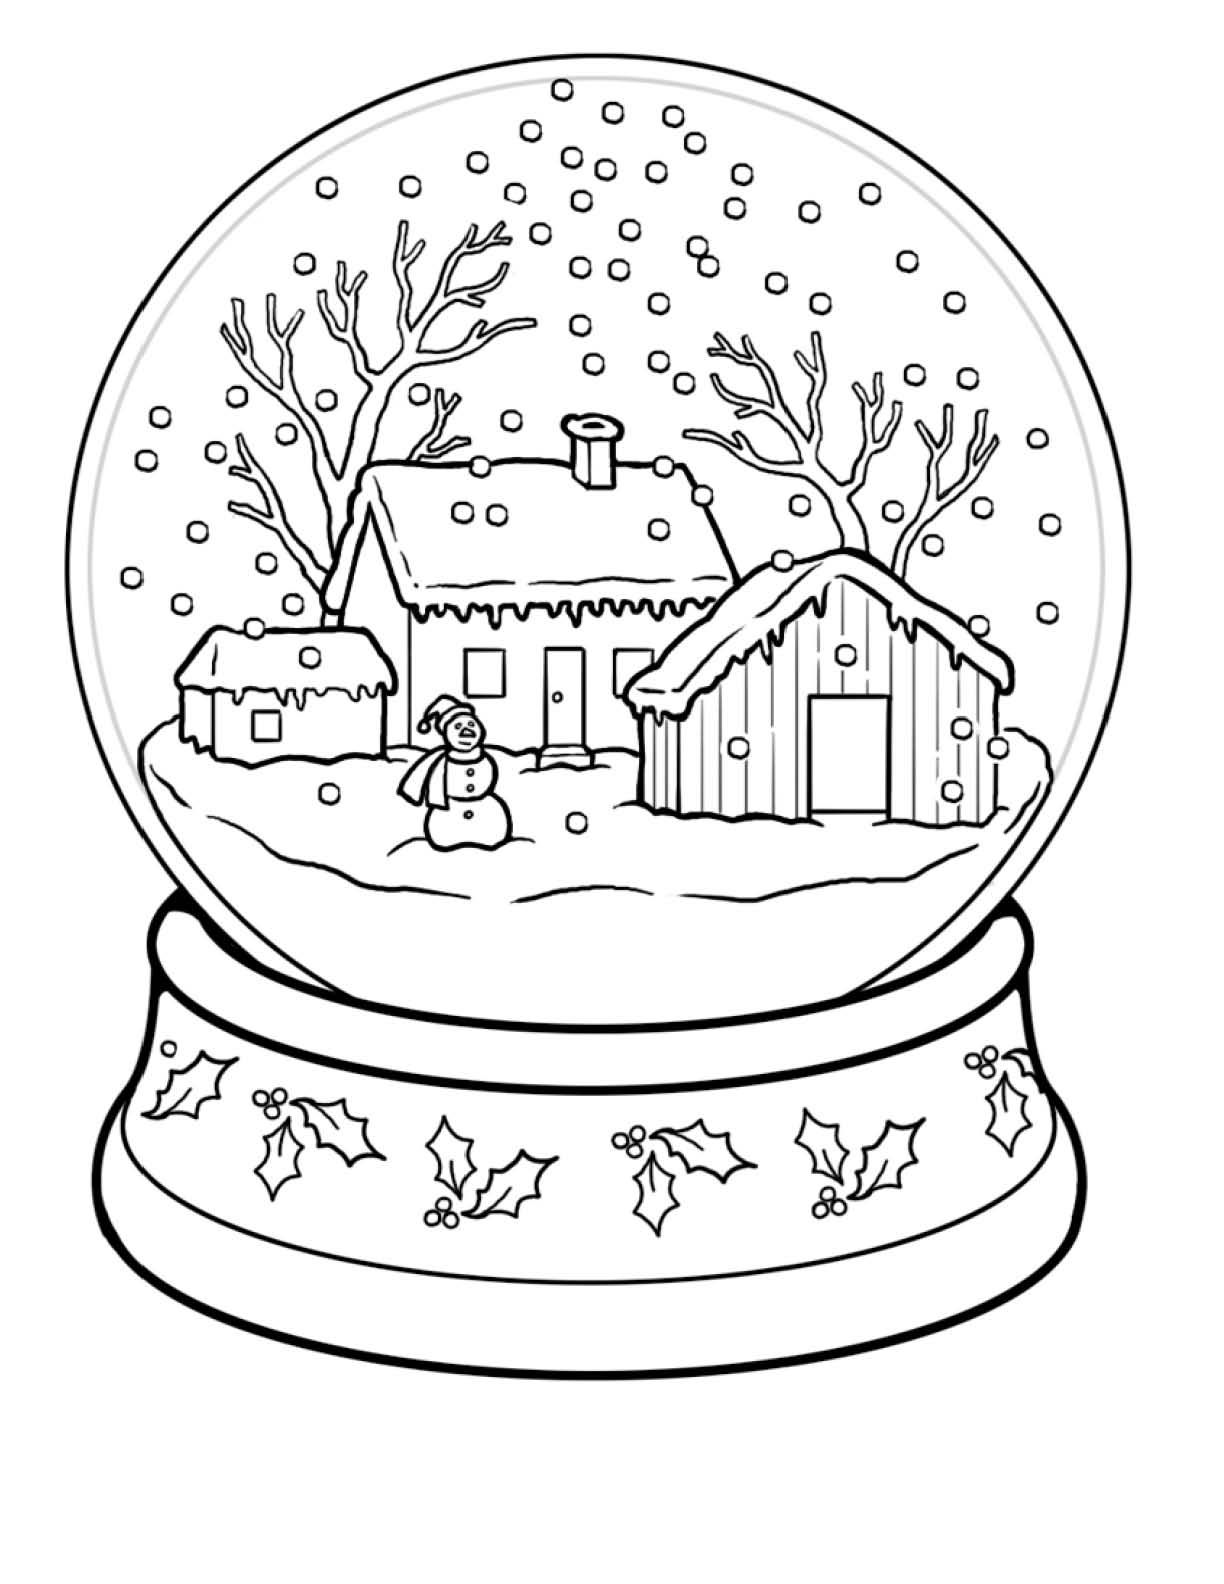 1224x1584 Winter Scene Coloring Pages, Winter Scene Colouring Pages Adult